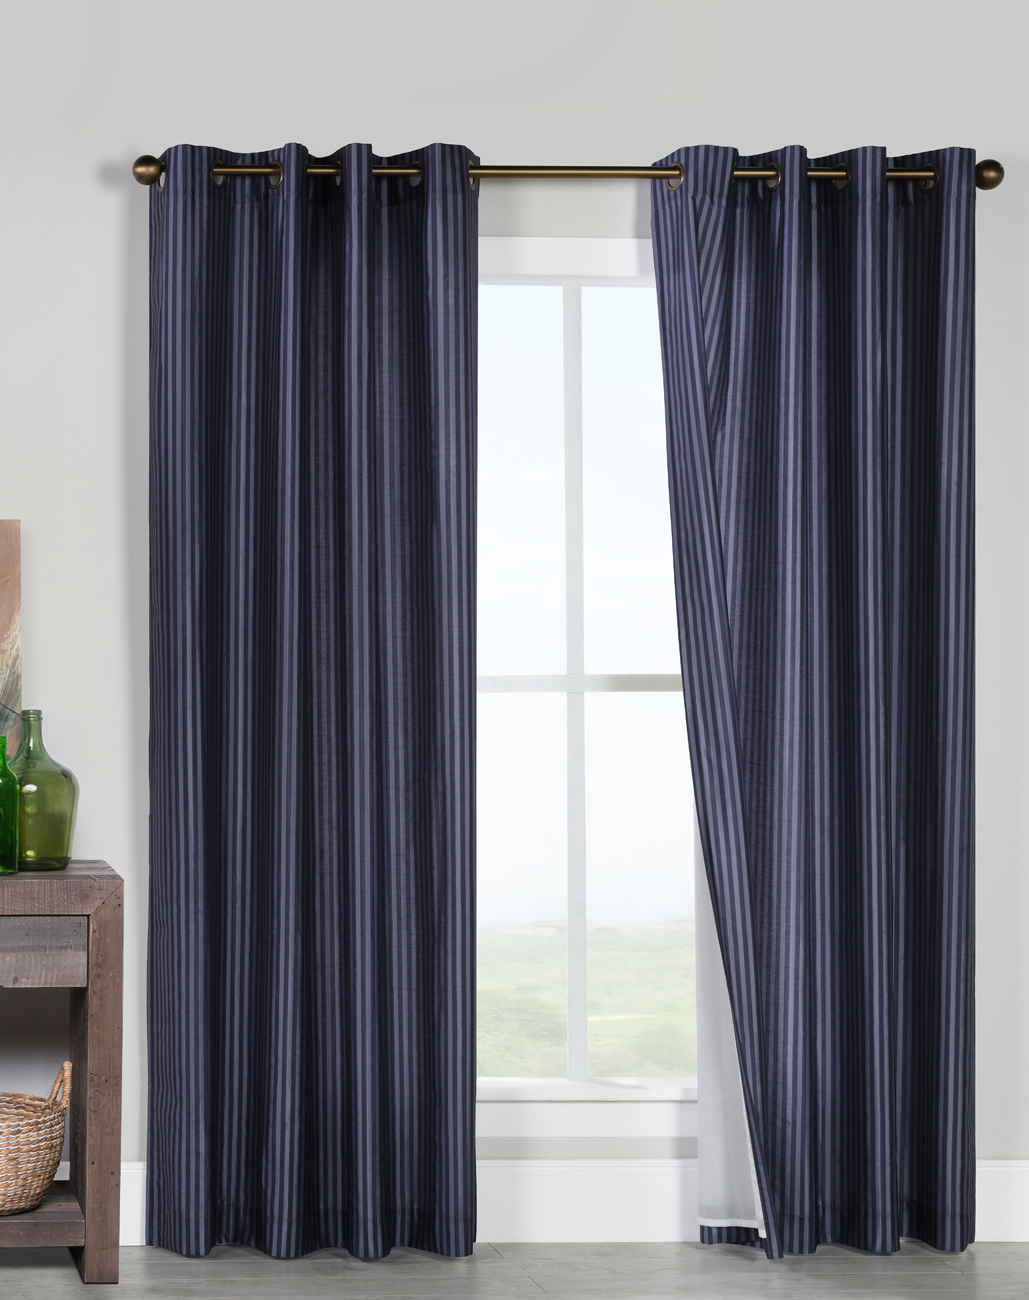 blackout panel wide rhf door grommet antique bronze curtain sliding patio index insulated thermal curtains